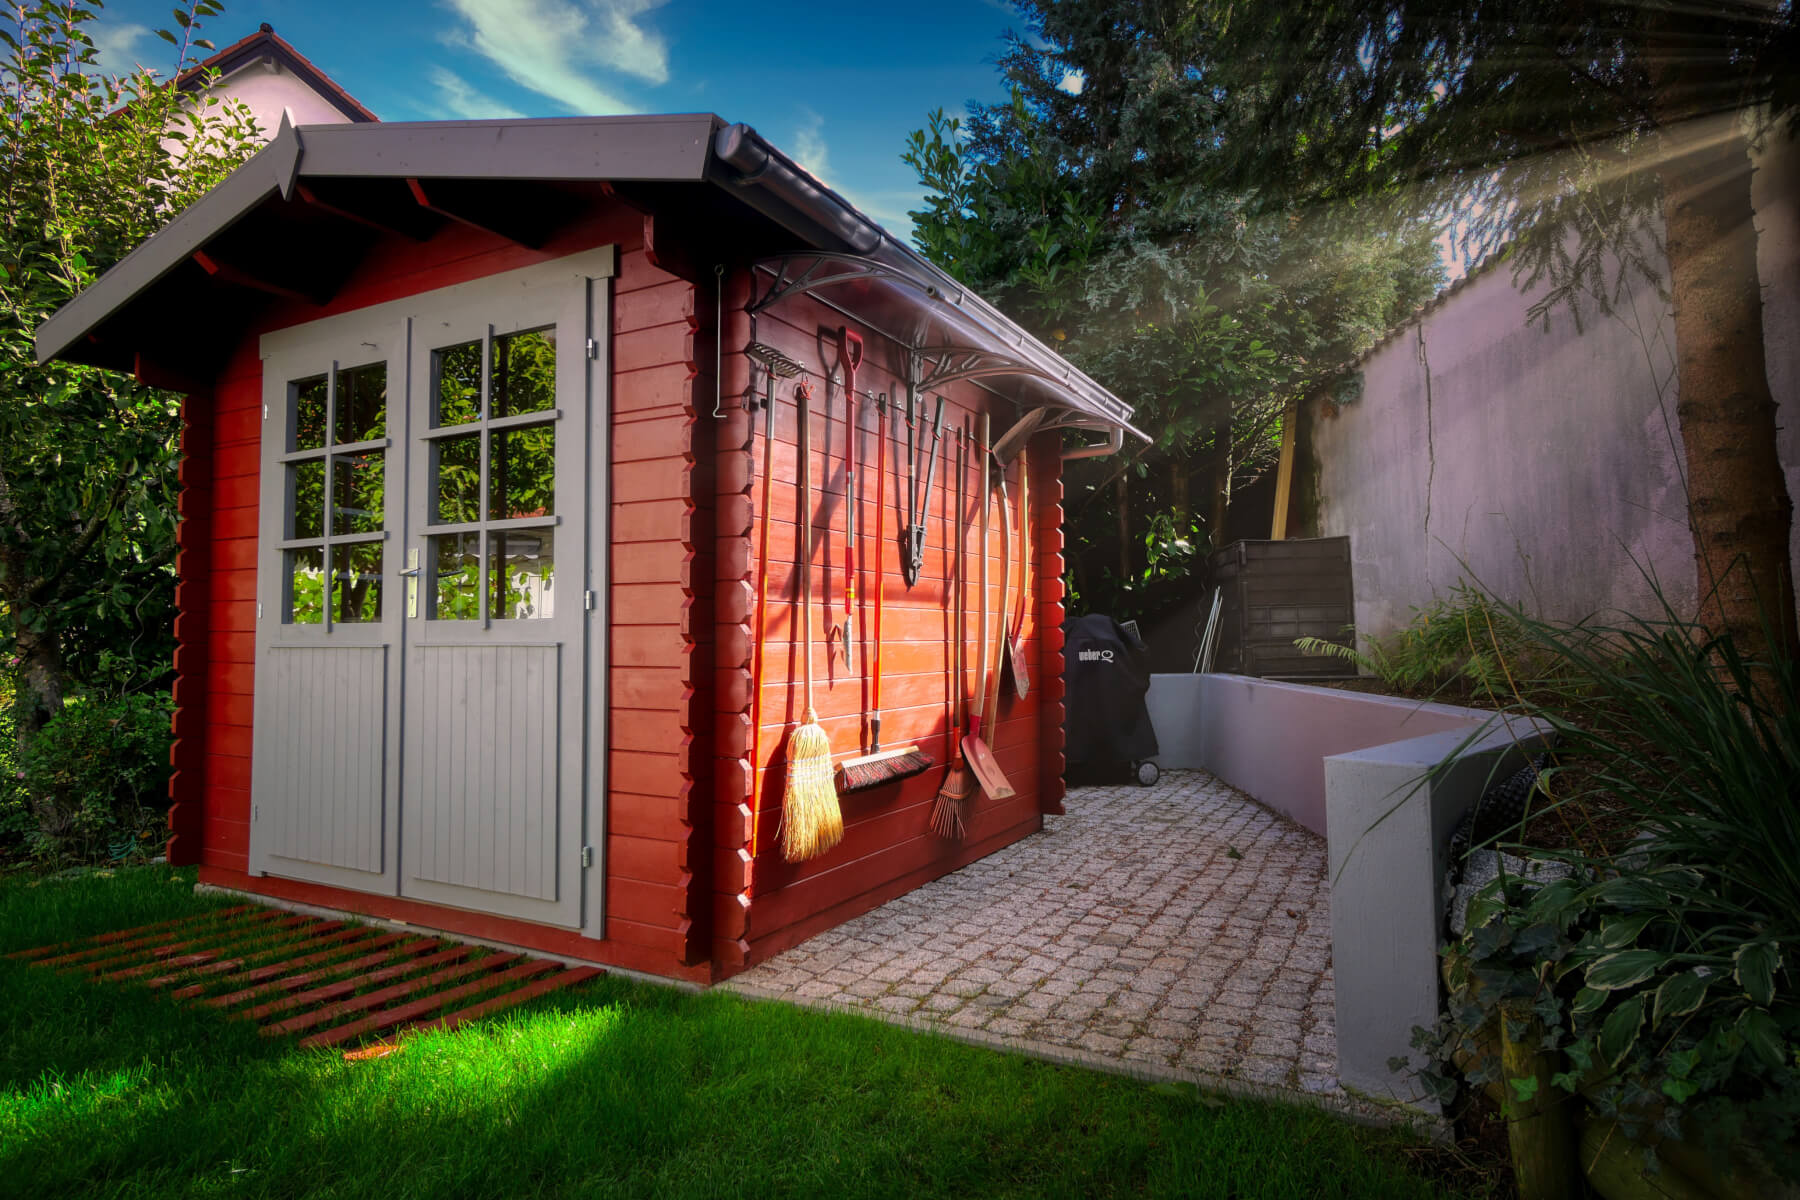 Garden shed placed on cobbles